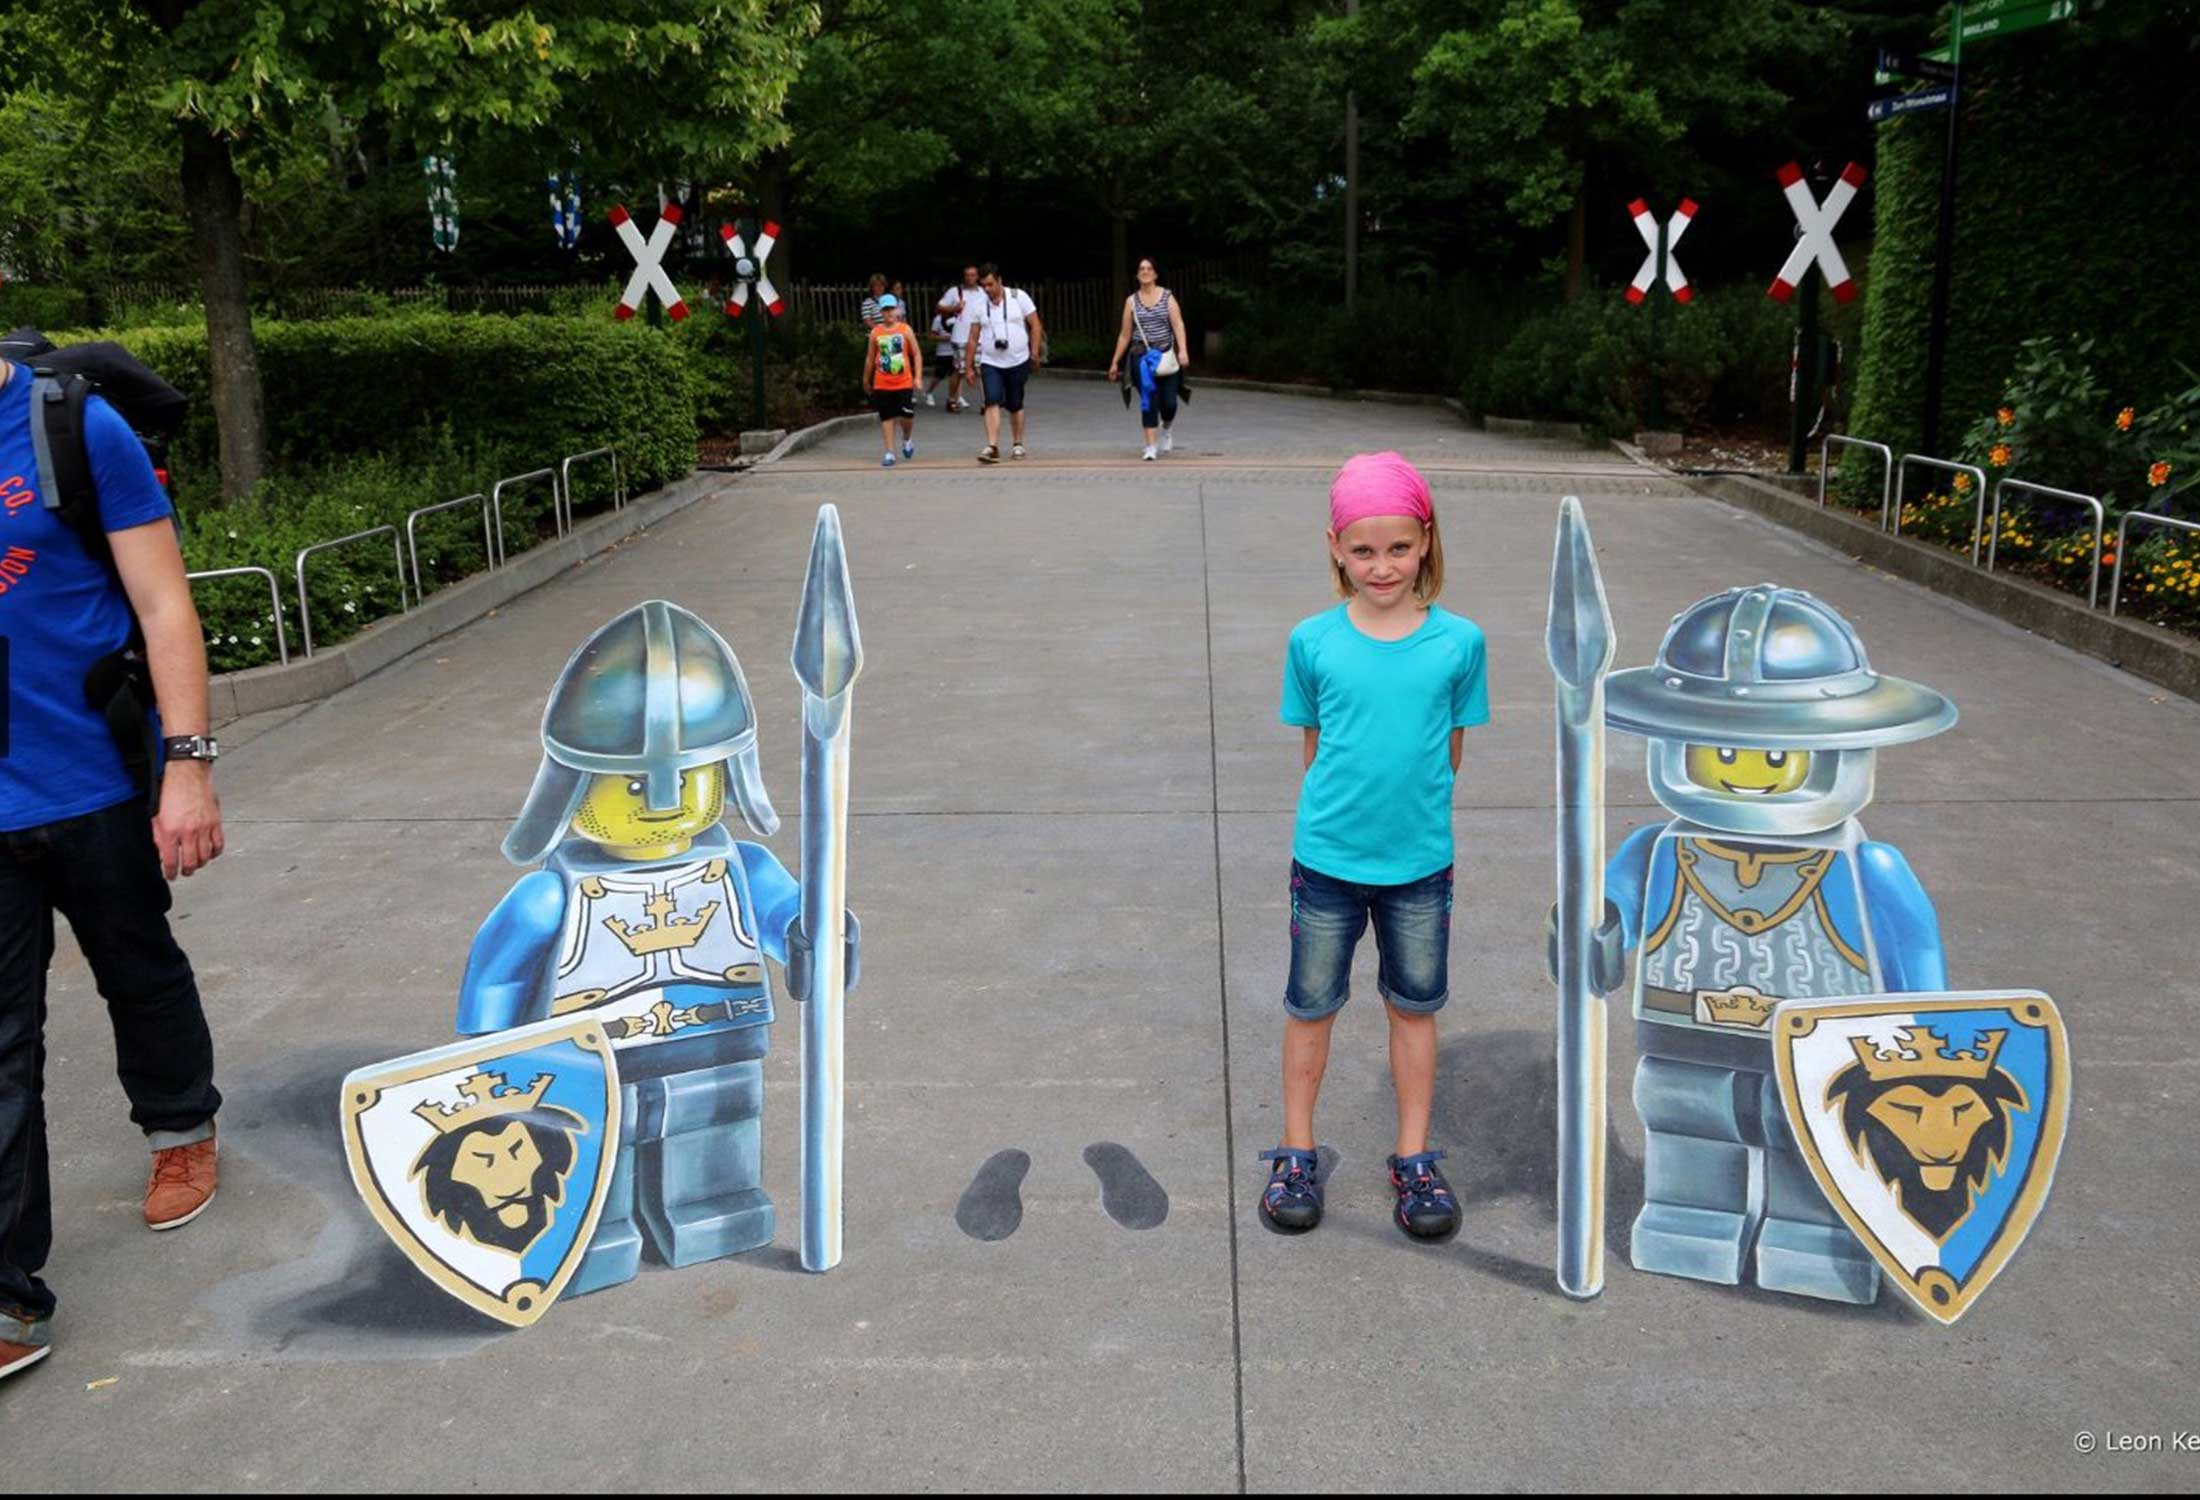 Enchanting 3D art in public places by Leon Keer featuring Lego characters